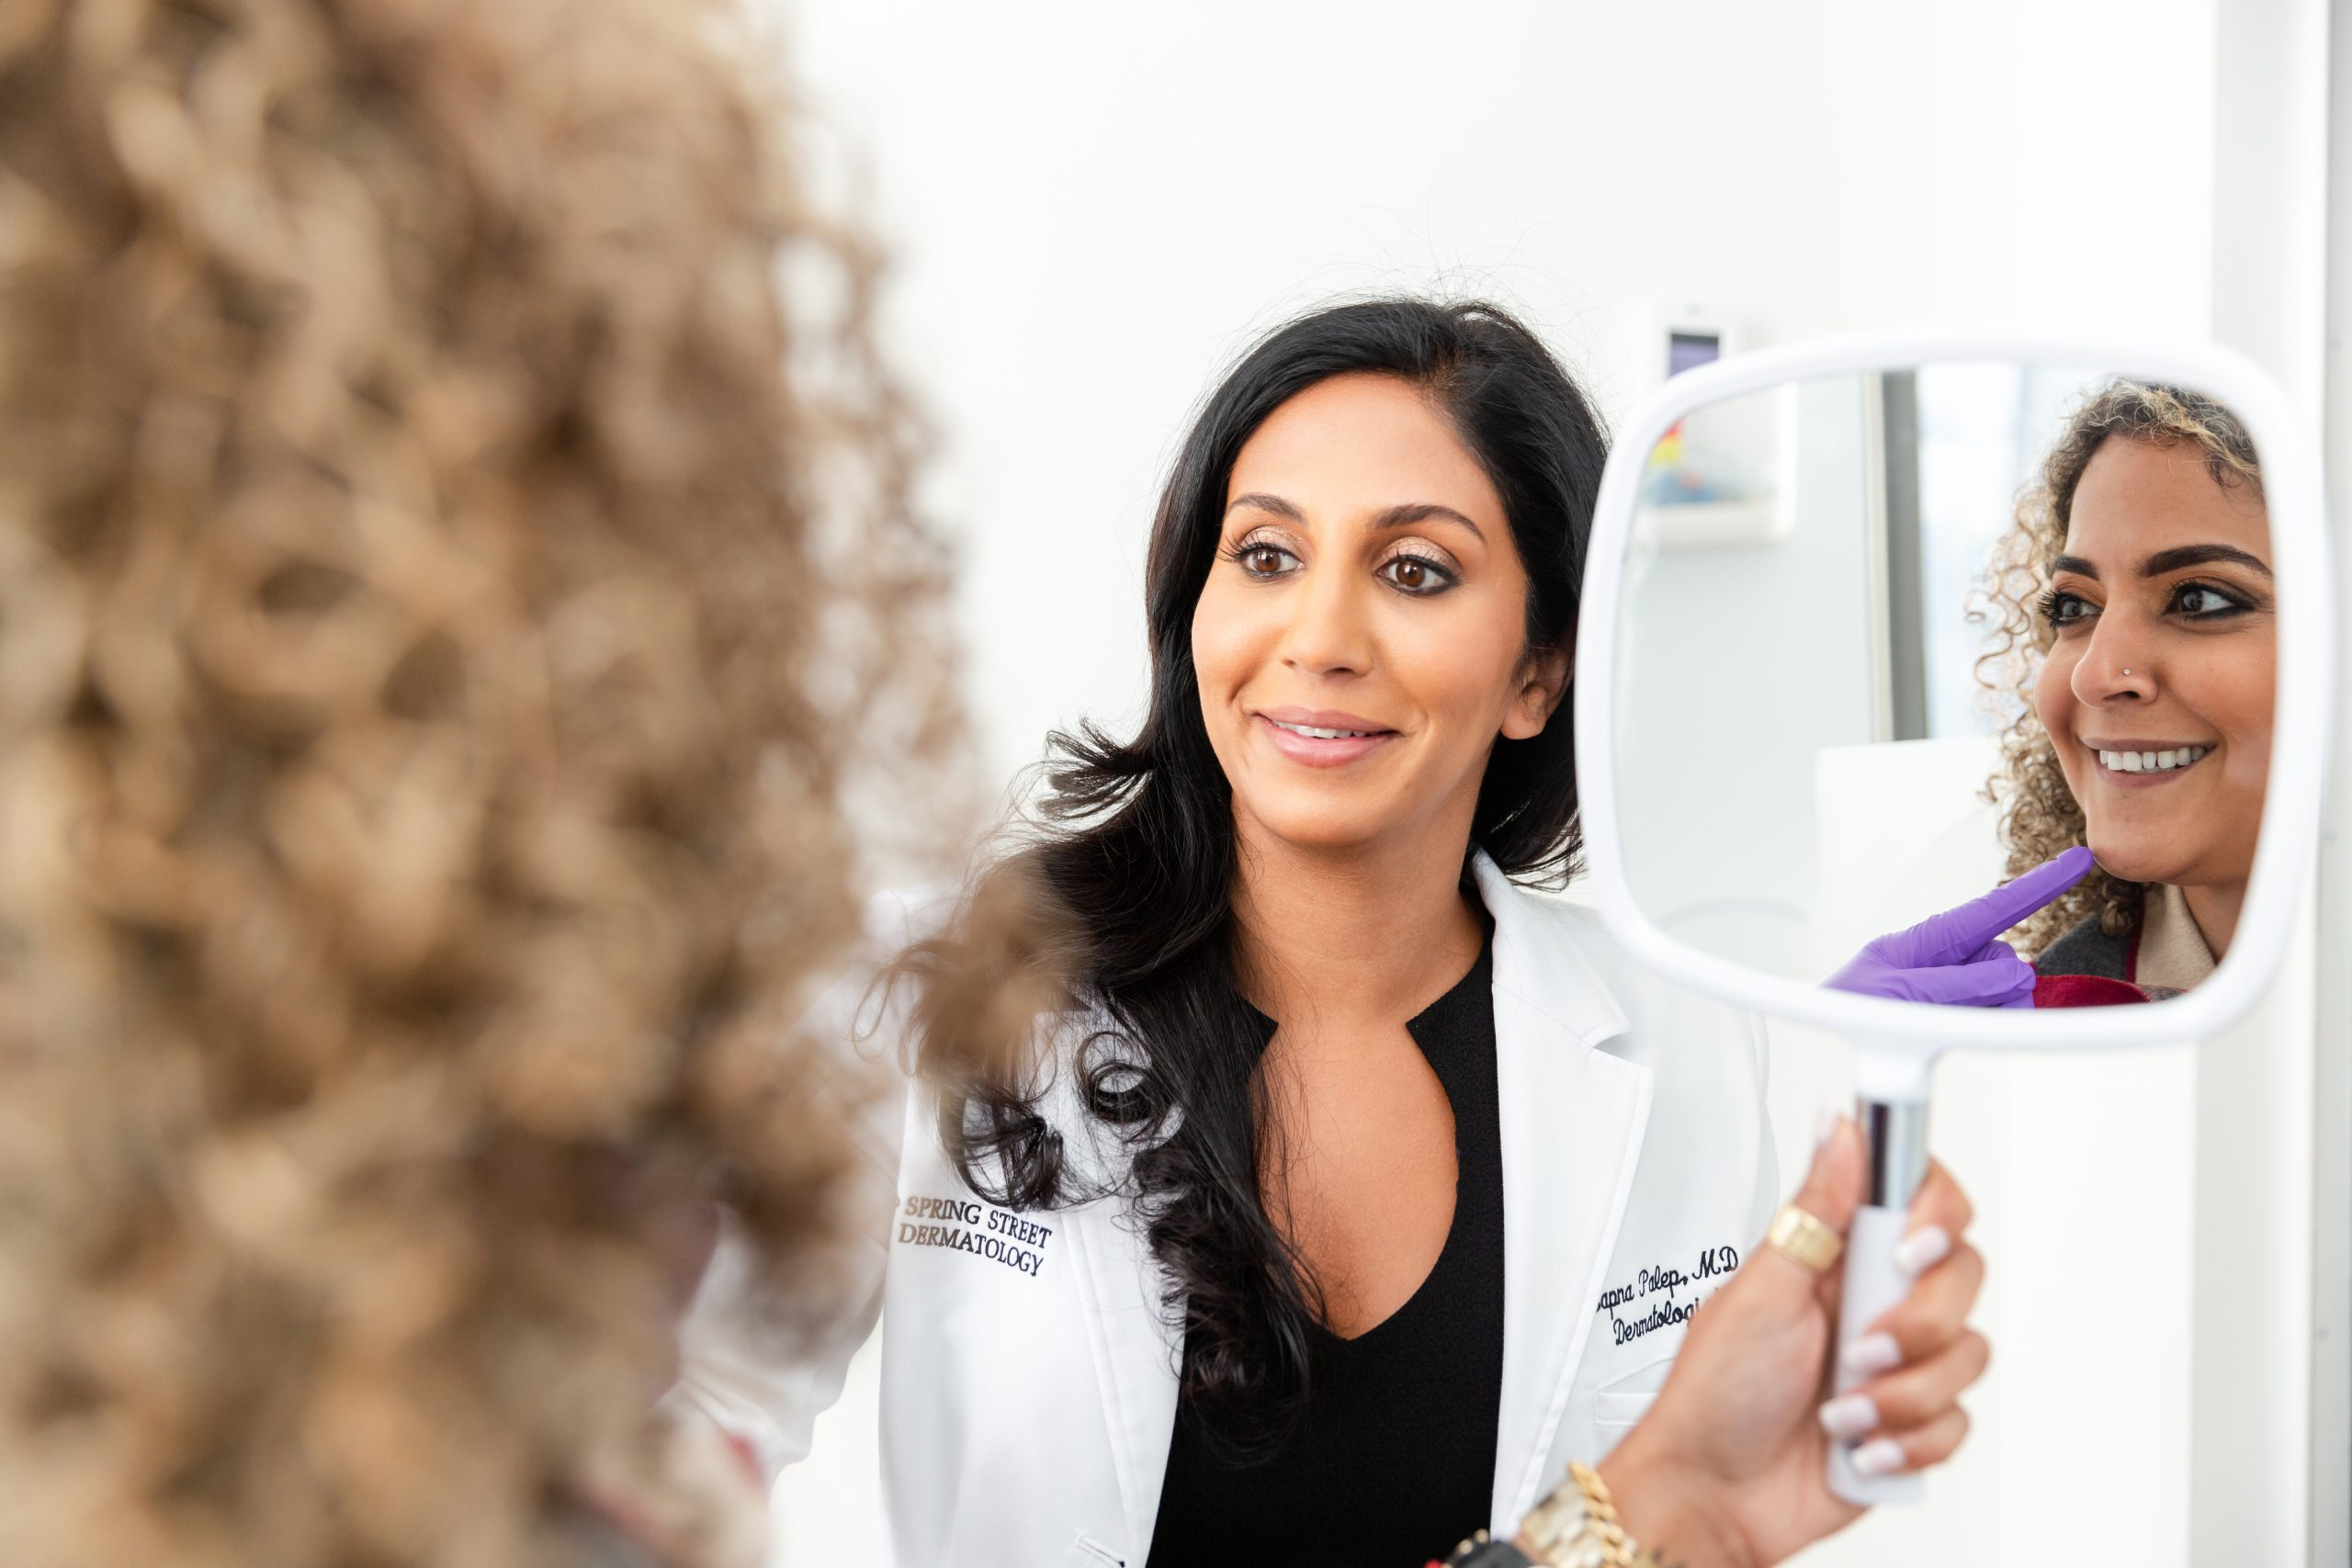 female getting consultation for chin treatment in NYC